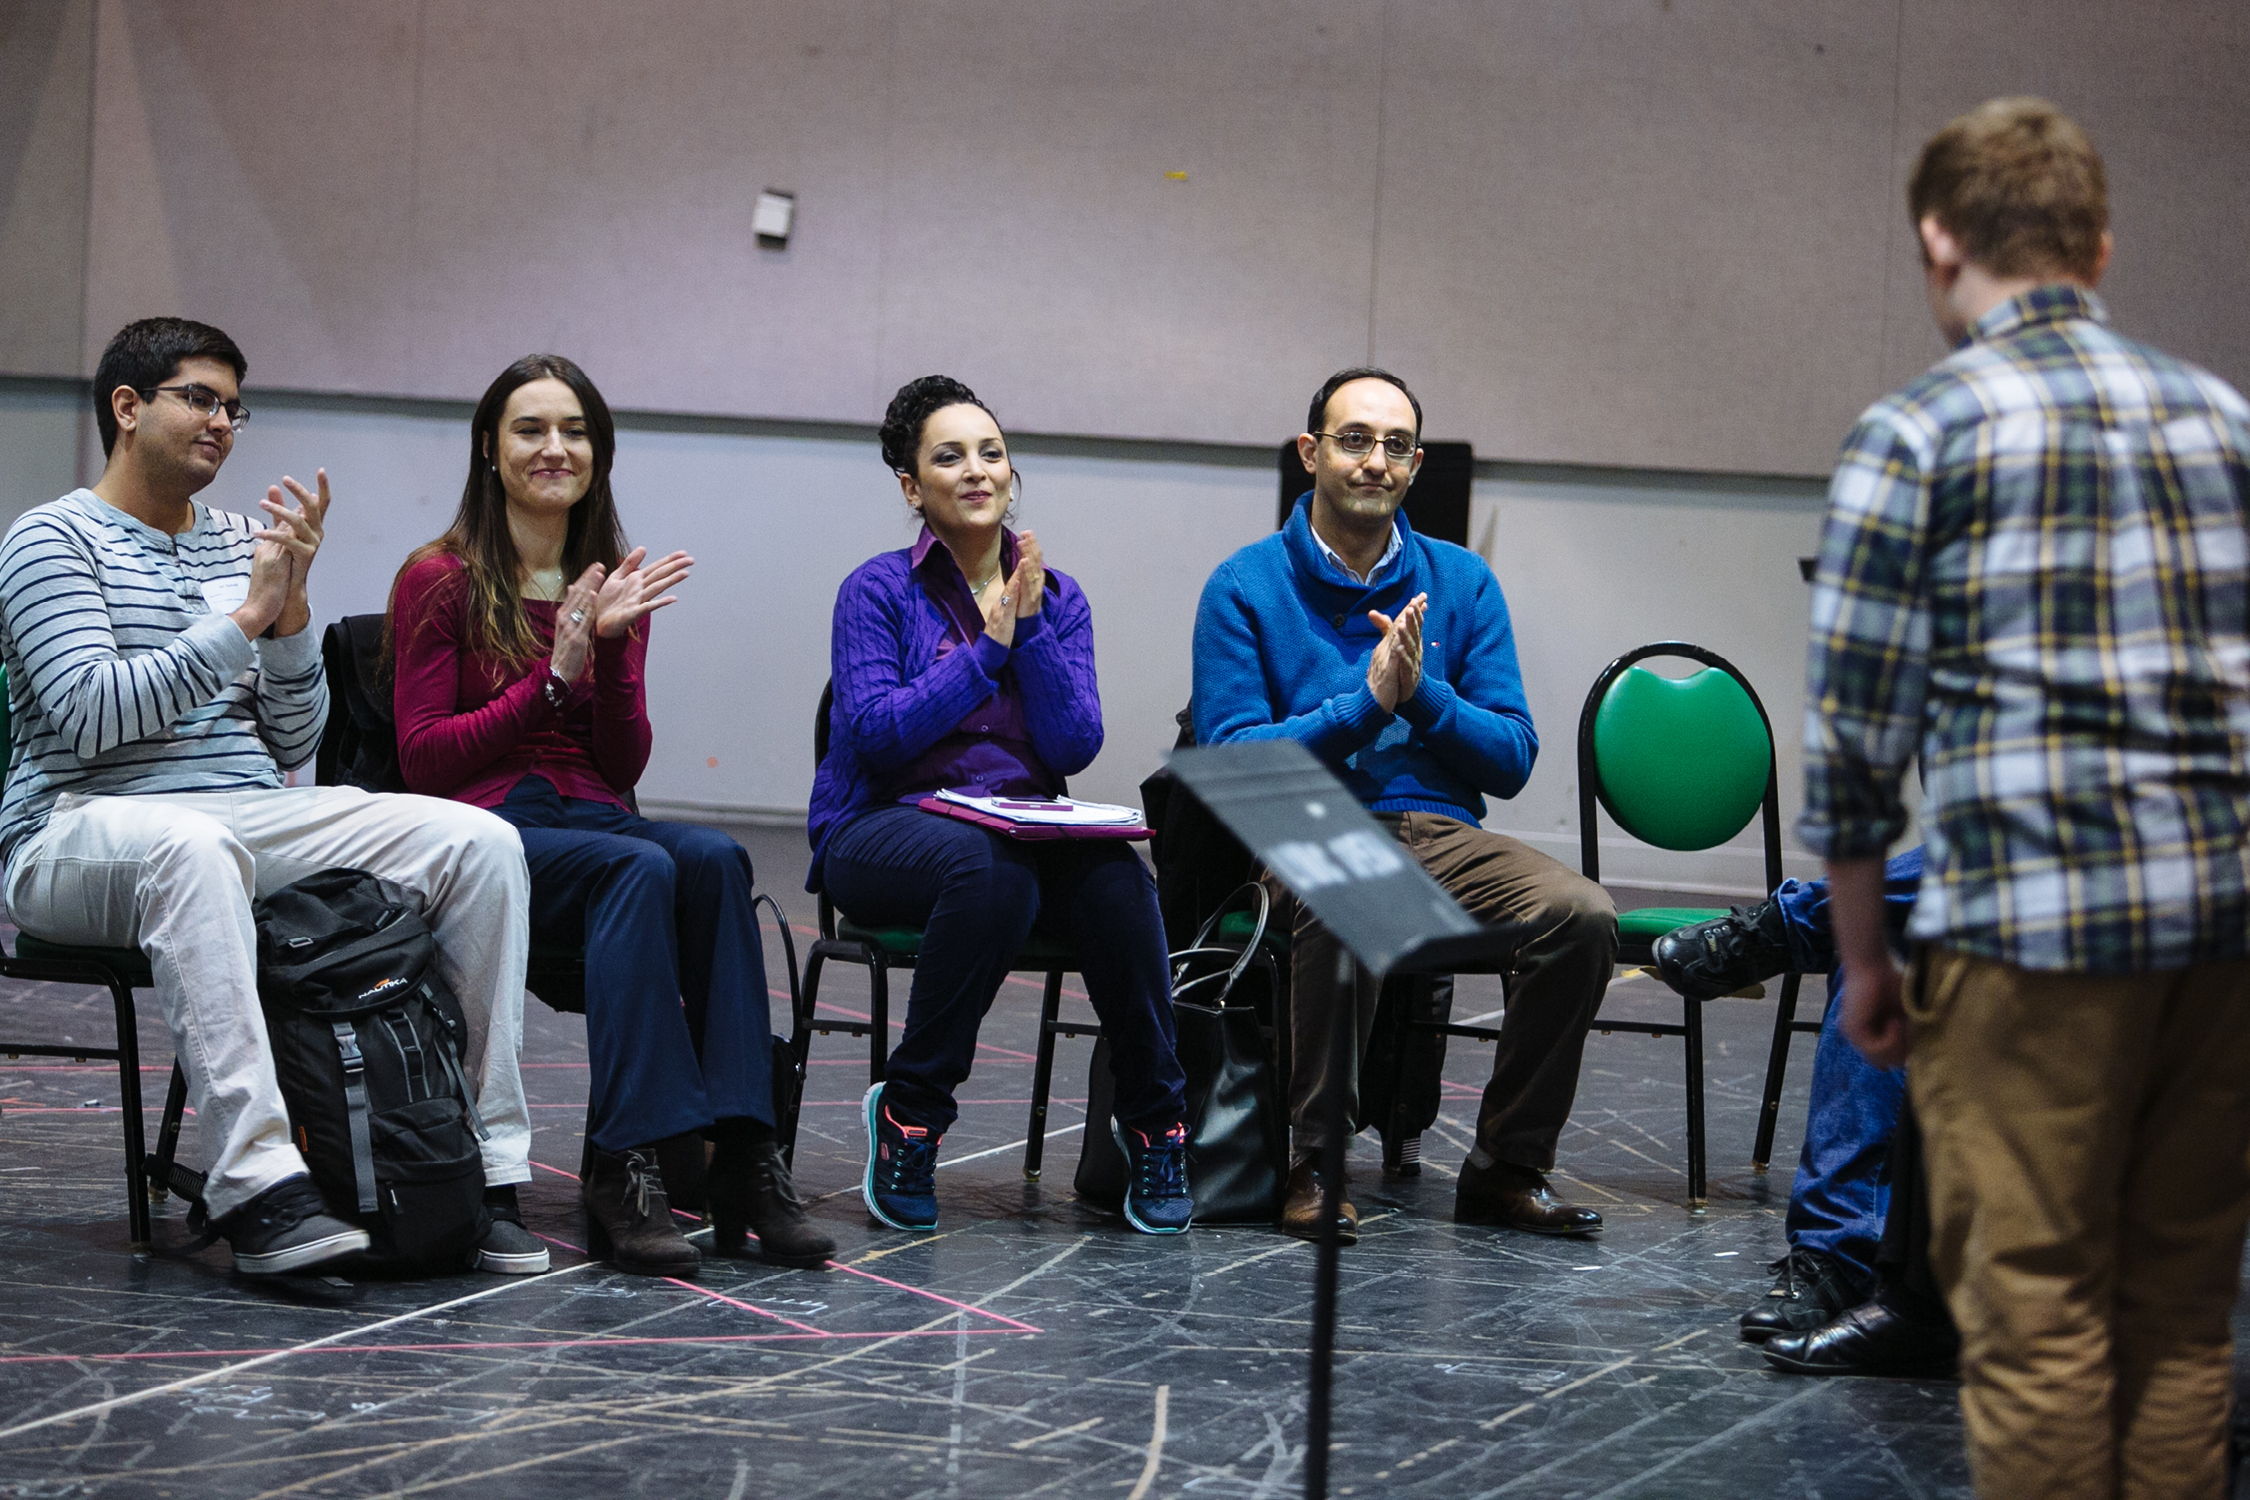 Artists clapping in rehearsal space